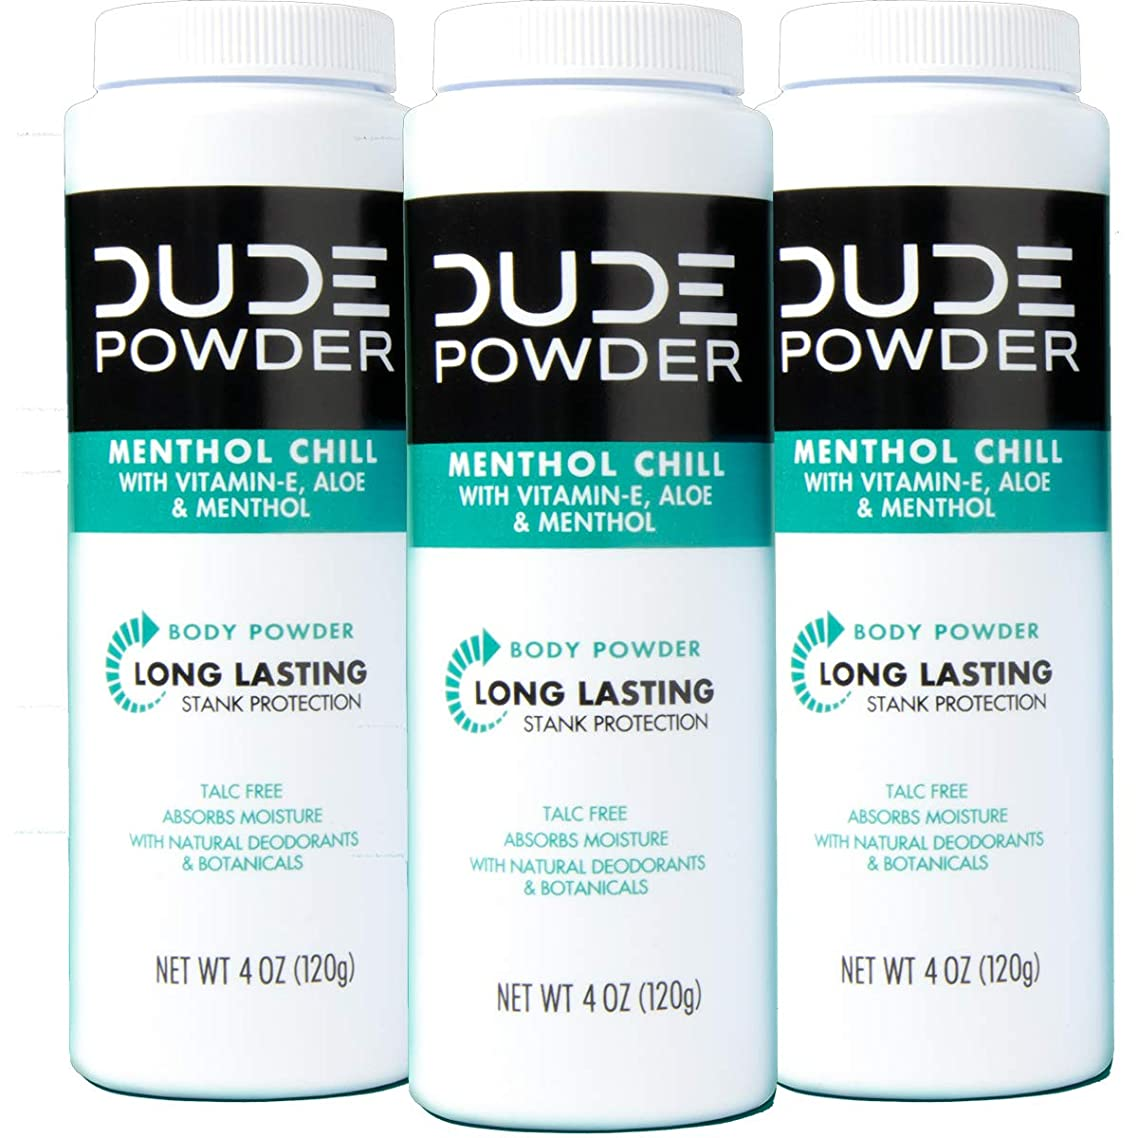 DUDE Body Powder, Menthol Chill 4 Ounce (3 Bottle Pack) Natural Deodorizers Cooling Menthol & Aloe, Talc Free Formula, Corn-Starch Based Daily Post-Shower Deodorizing Powder for Men